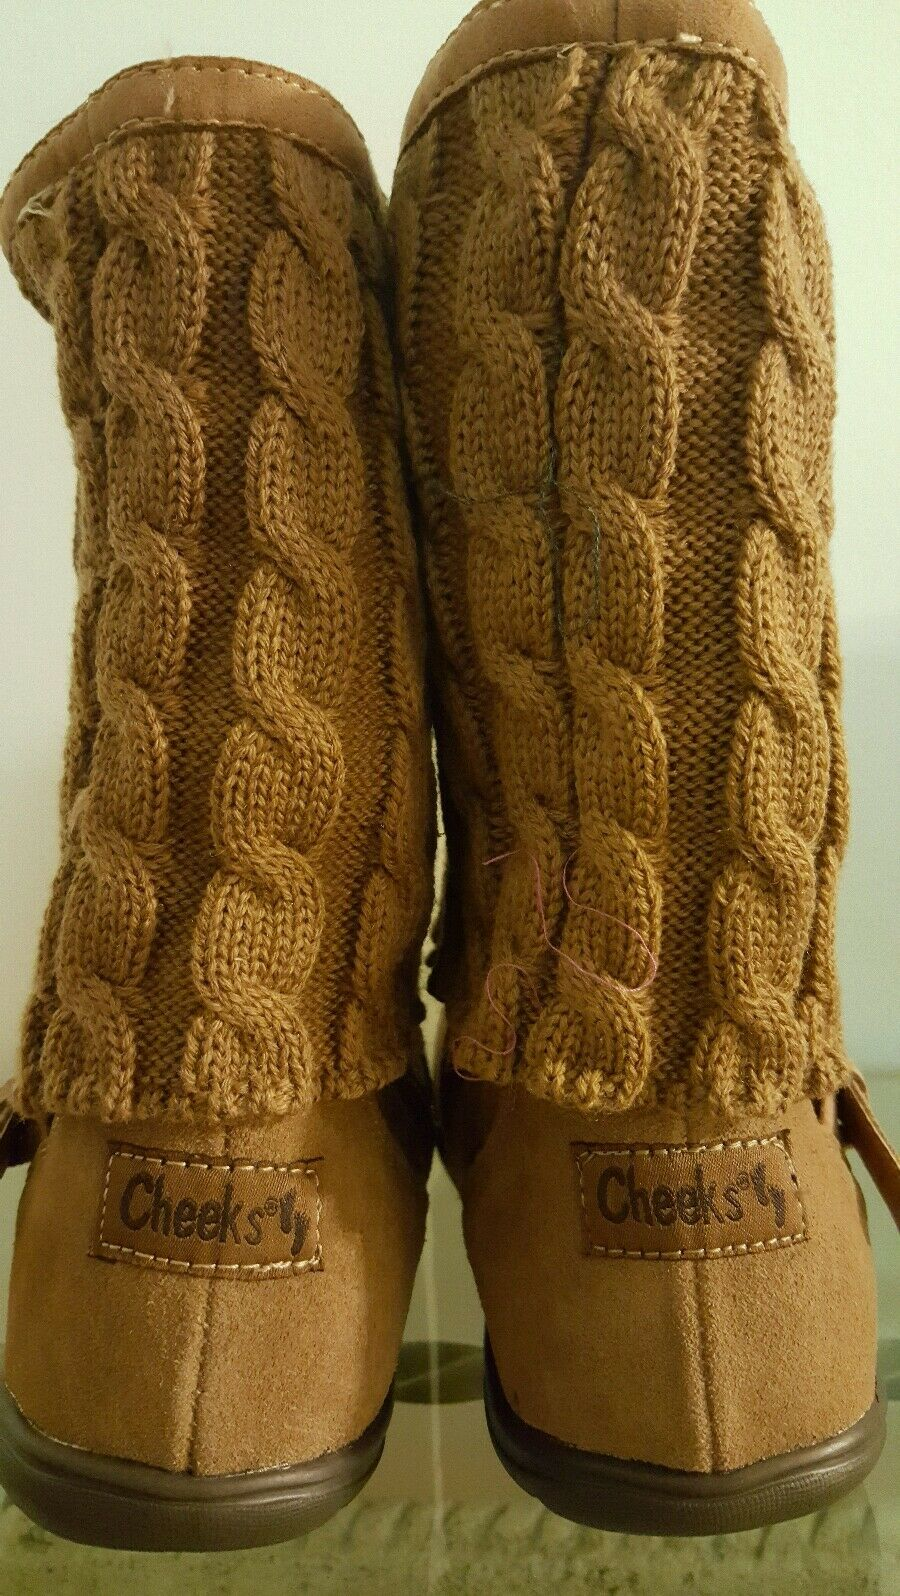 Tony Little Cheeks Fit Fit Fit Body Boot, Women's Size 7.5  Camel NIB 0a5978